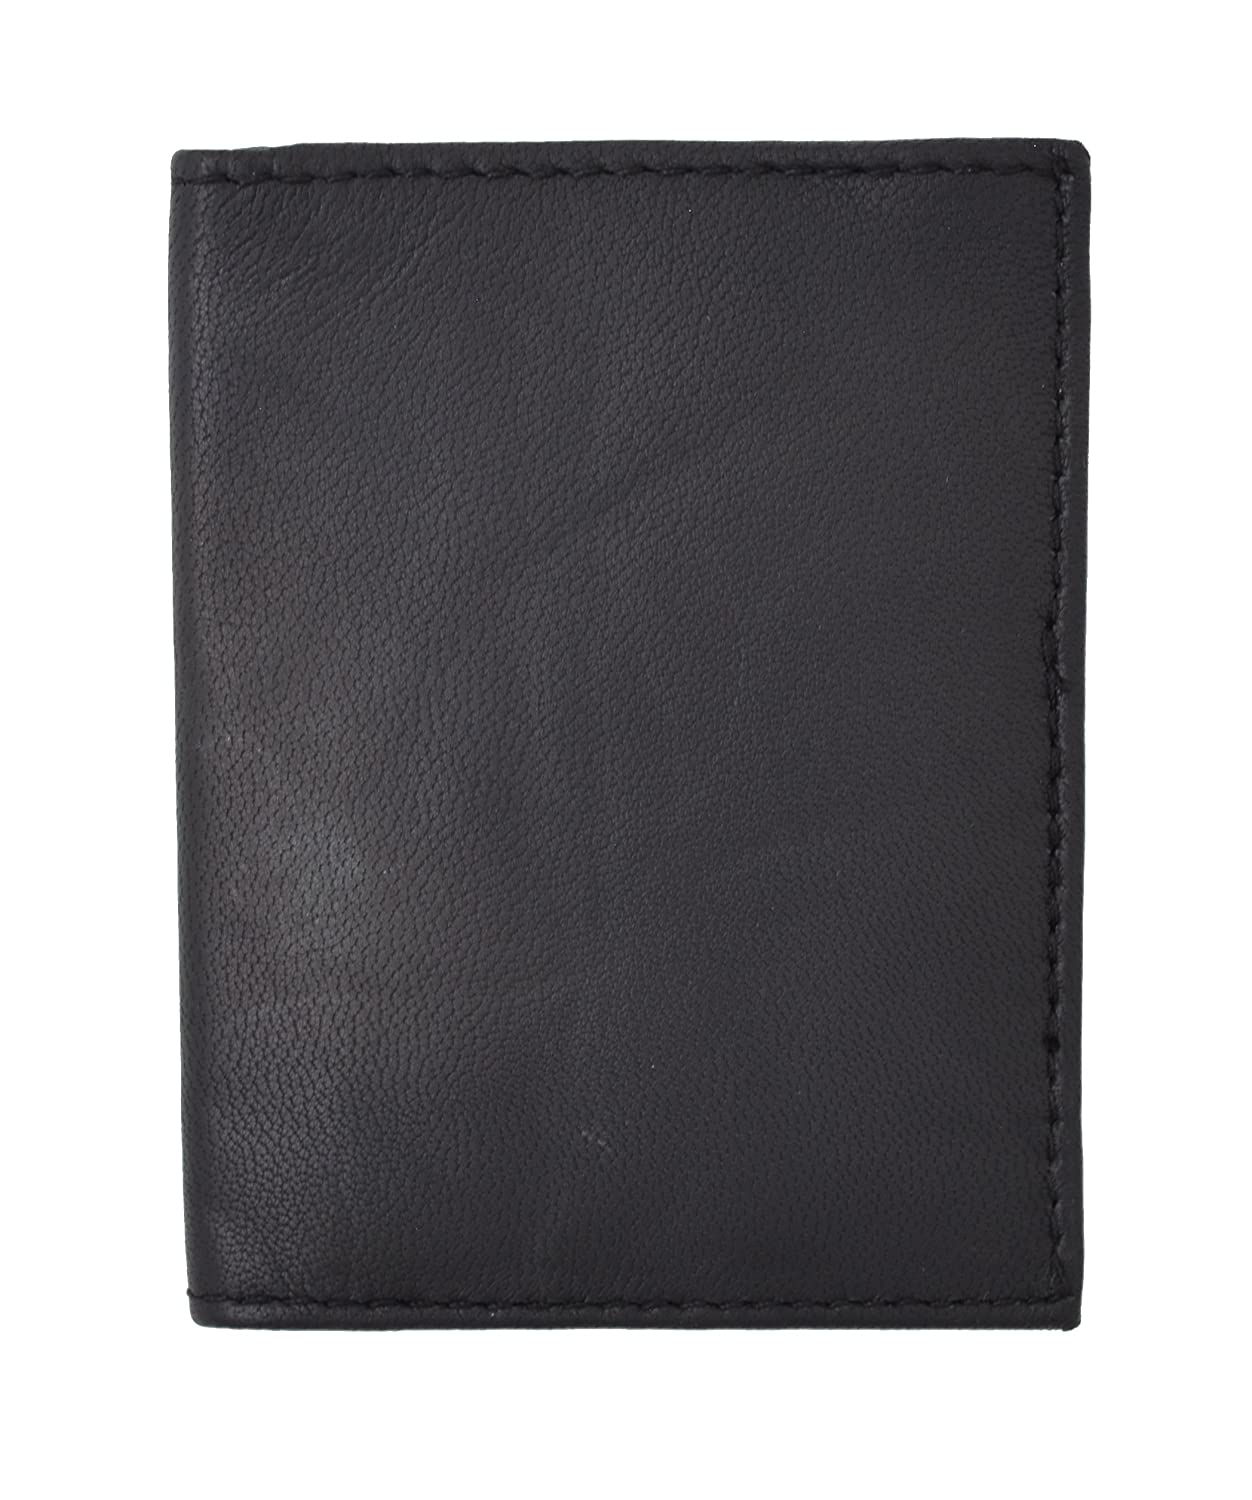 Genuine Lambskin Soft Leather Credit Card Holder with Id Window by Marshal